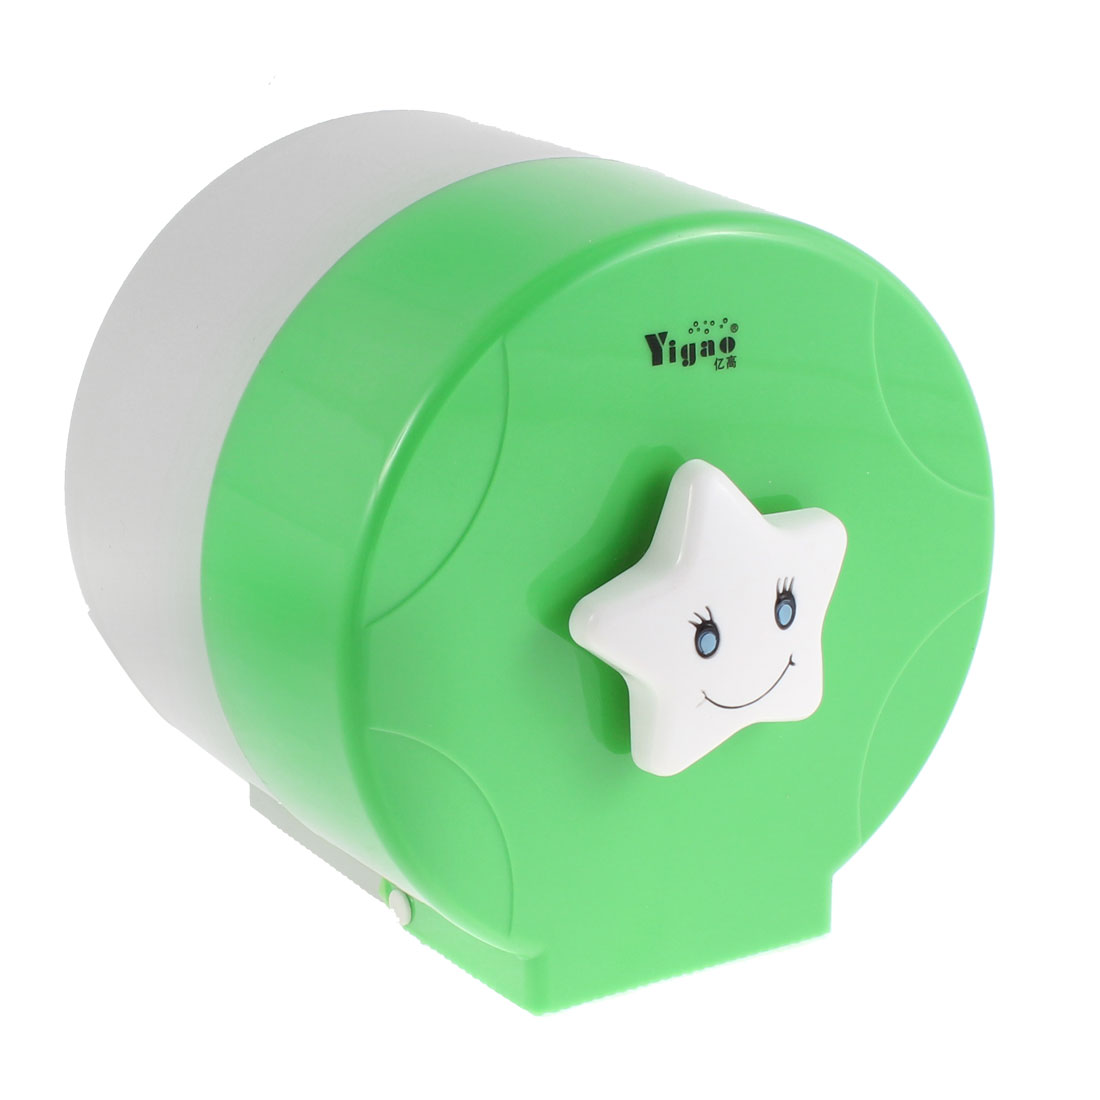 Unique Bargains Plastic Cylindrical Design Toilet Paper Rack Tissue Holder Box Green